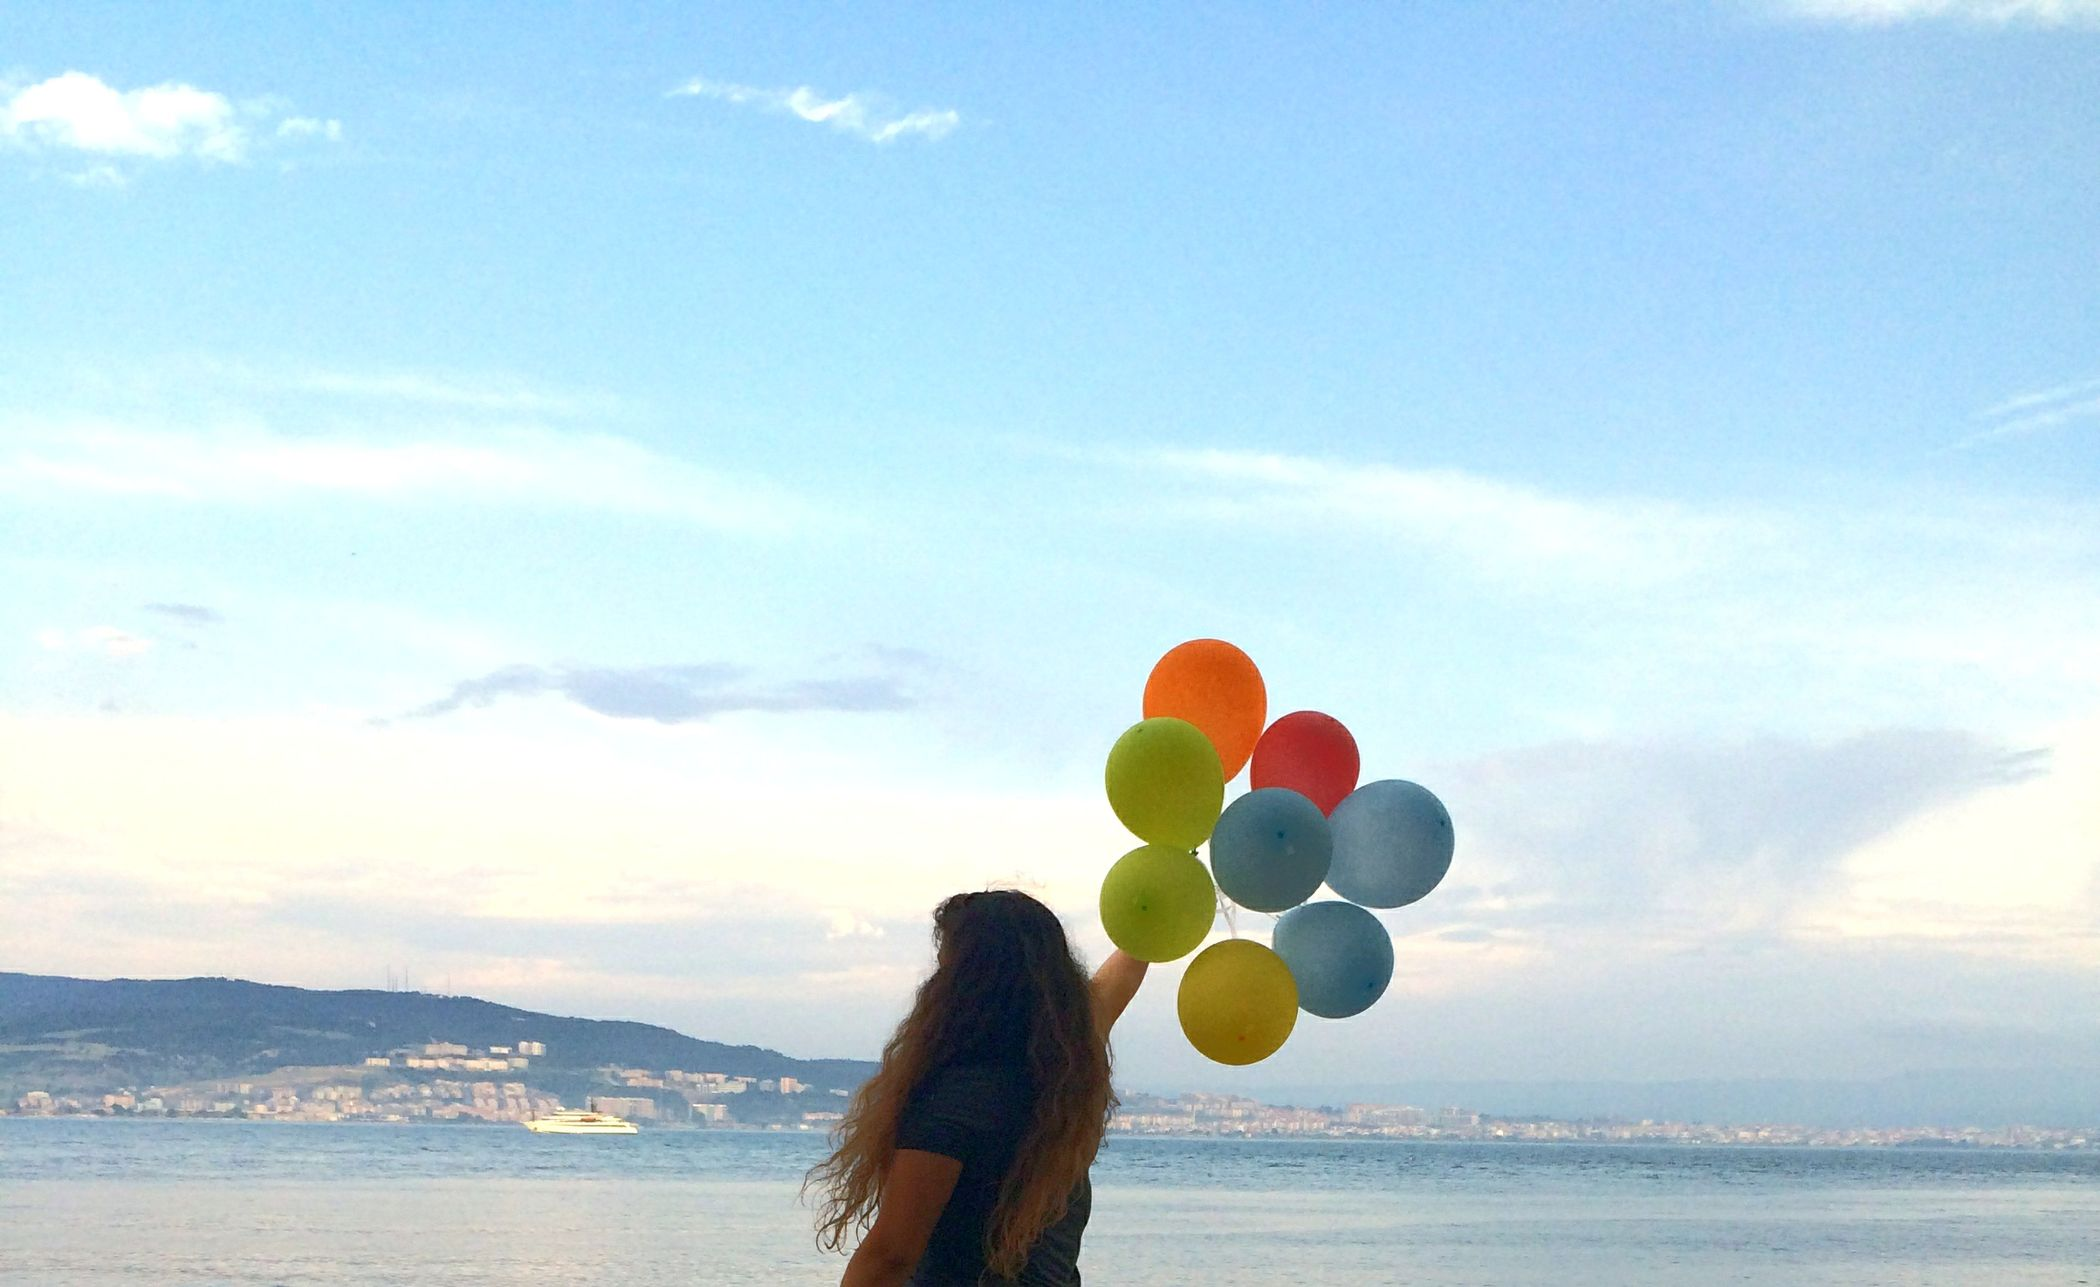 Balloons HappyBirthday MyBirthday 21may Zarganabeach Sea And Sky Canakkake Kilitbahir